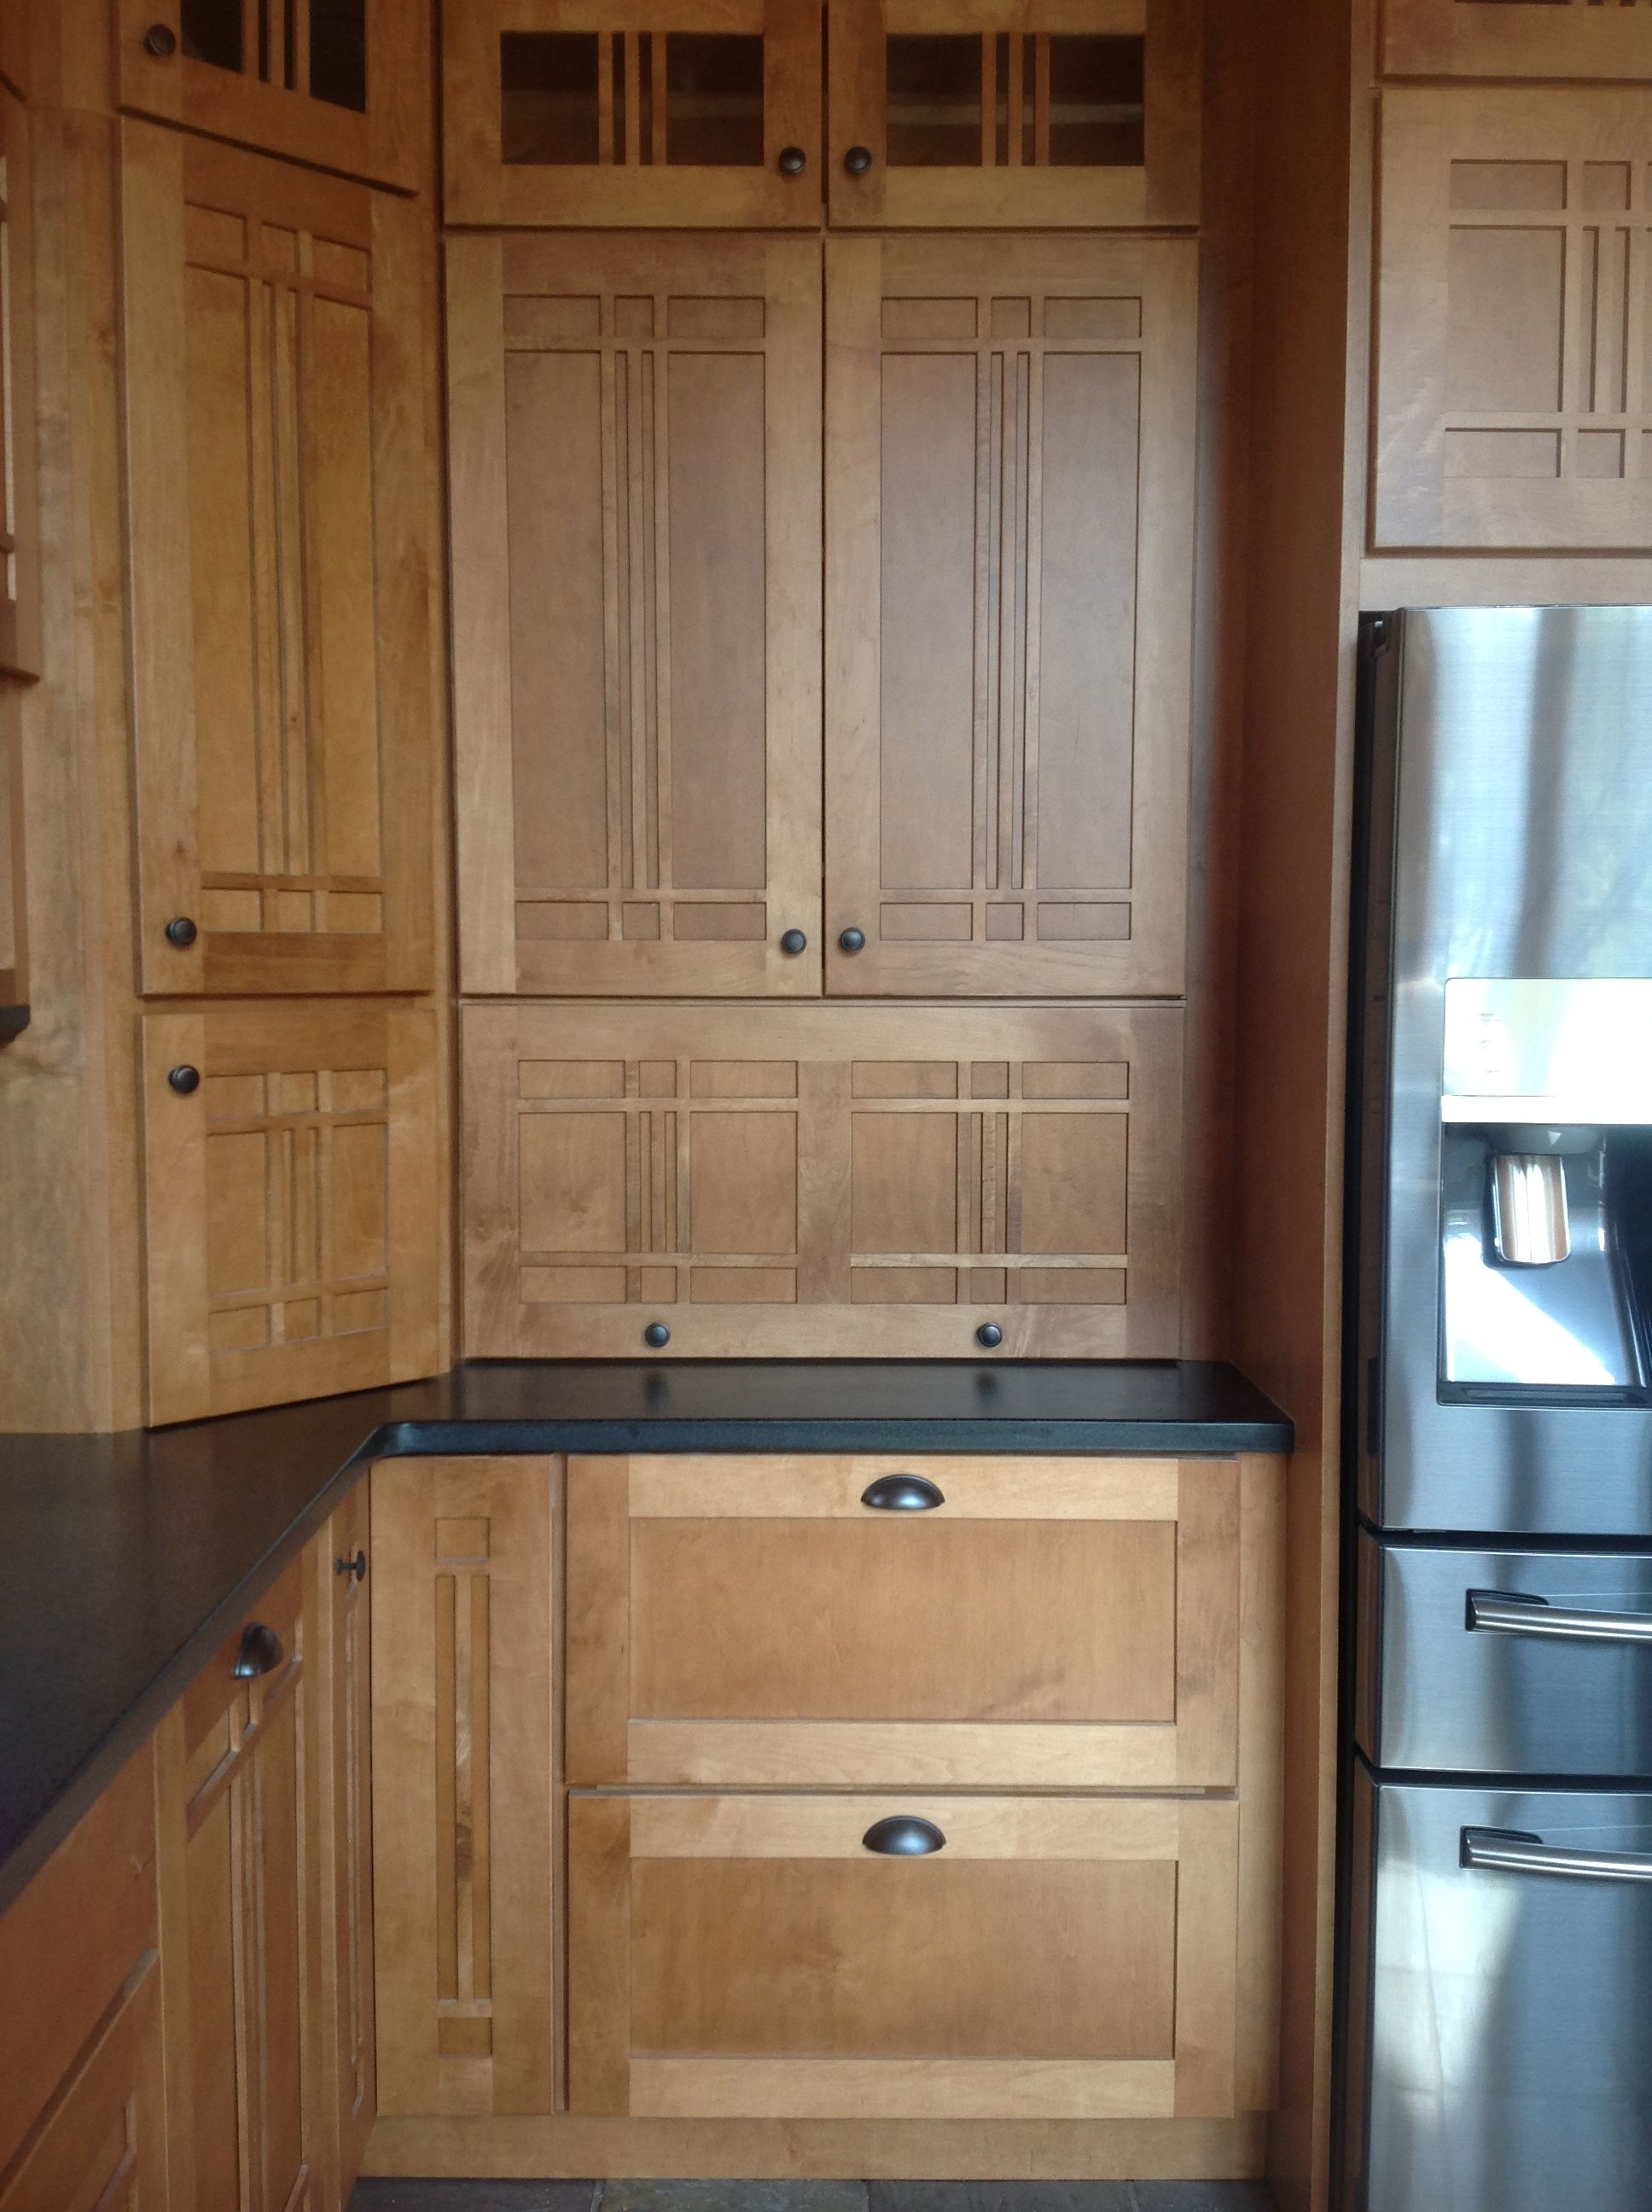 Schuler Maple Kitchen Cabinets In Artisan Door Style With Chestnut Stain In Log Home Kitchen Remodel Inspiration Artisan Kitchen Cabinets Schuler Cabinets